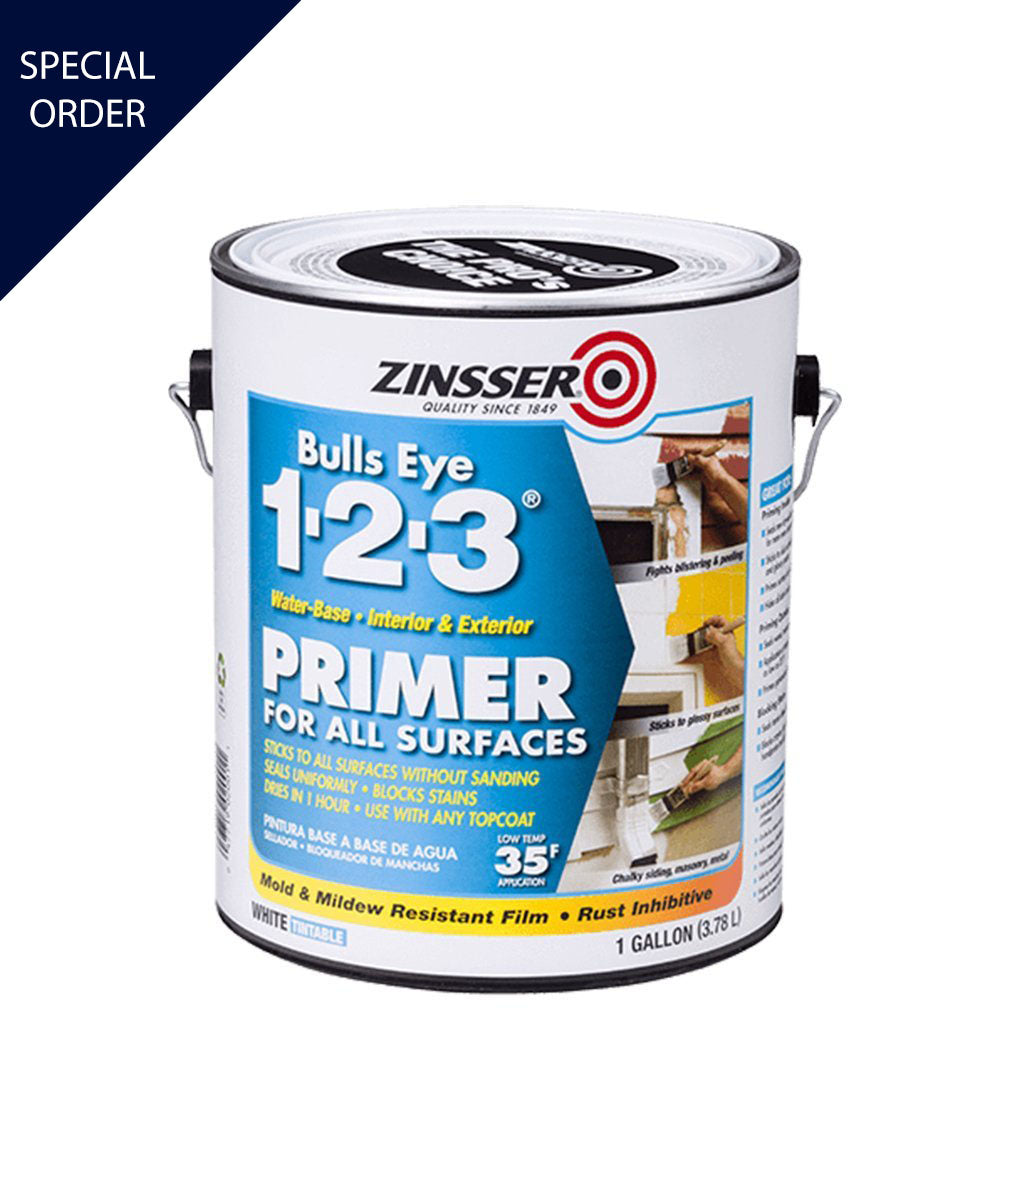 Bullseye 123 waterbase primer and sealer, available at Mallory Paint Store in WA & ID.